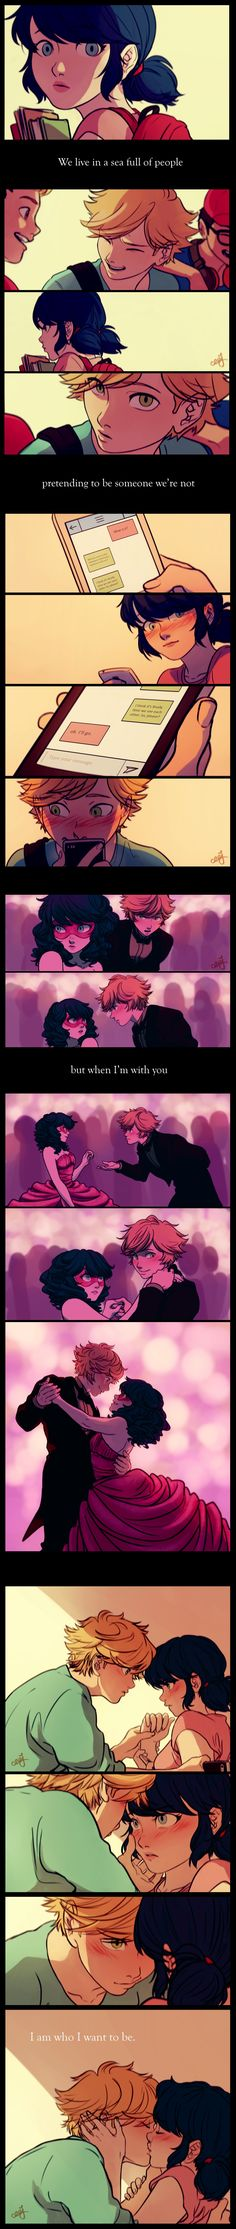 Adrien and Marinette <3